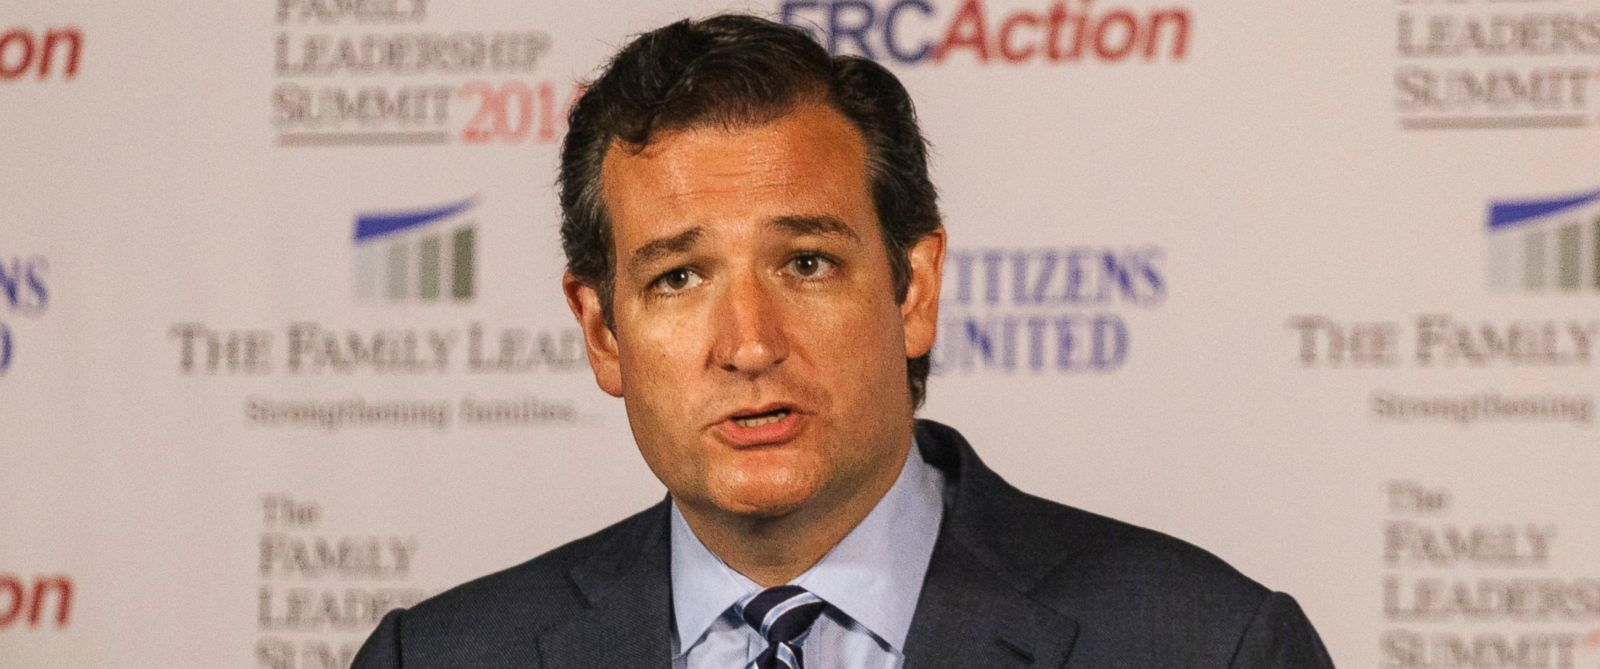 PHOTO: Ted Cruz speaks after the Family Leadership Summit in Ames, Iowa Aug. 9, 2014.